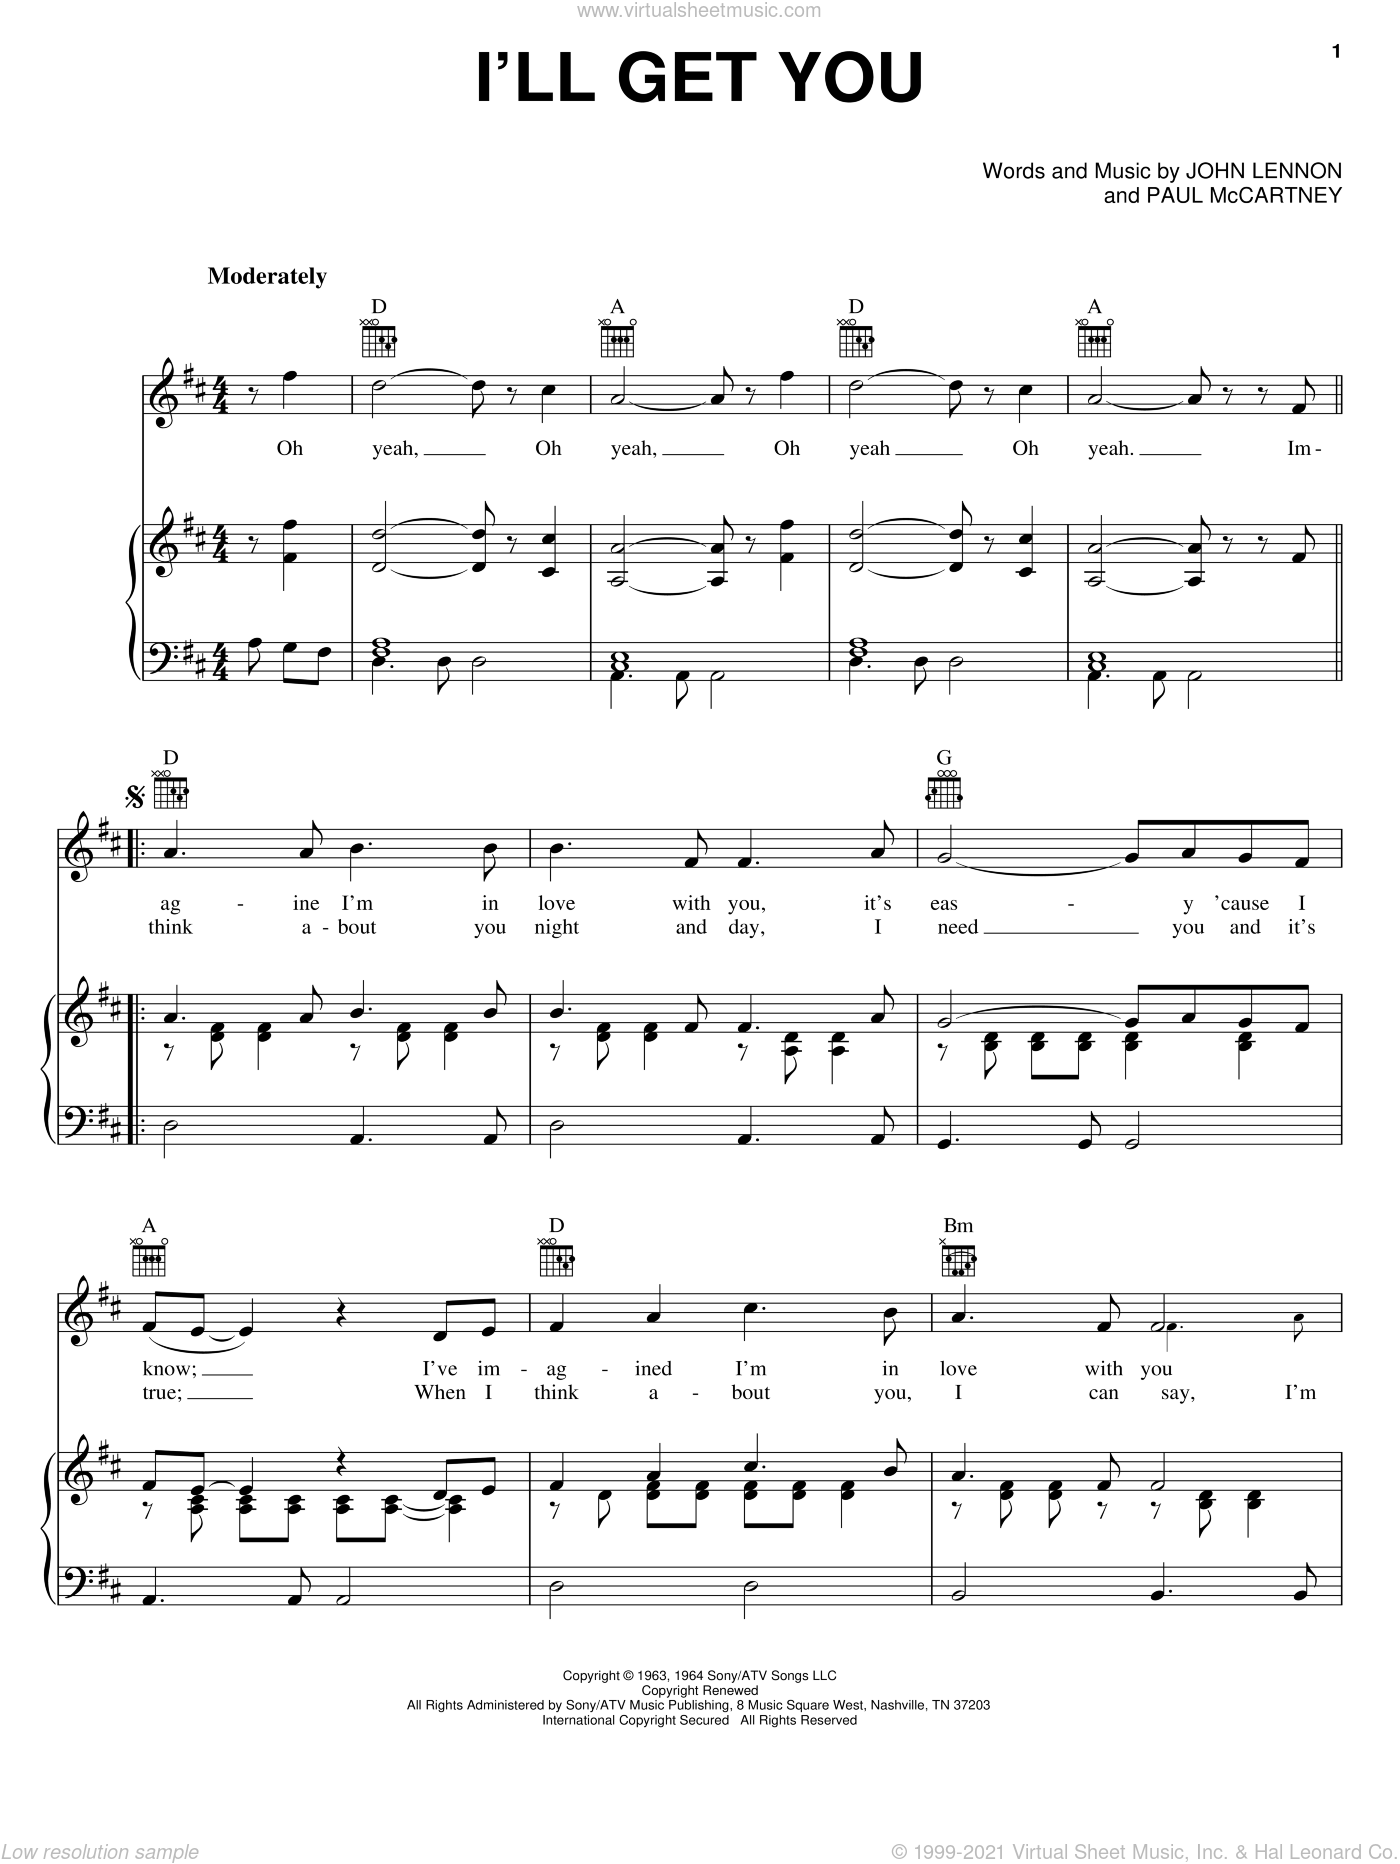 I'll Get You sheet music for voice, piano or guitar by Paul McCartney, The Beatles and John Lennon. Score Image Preview.